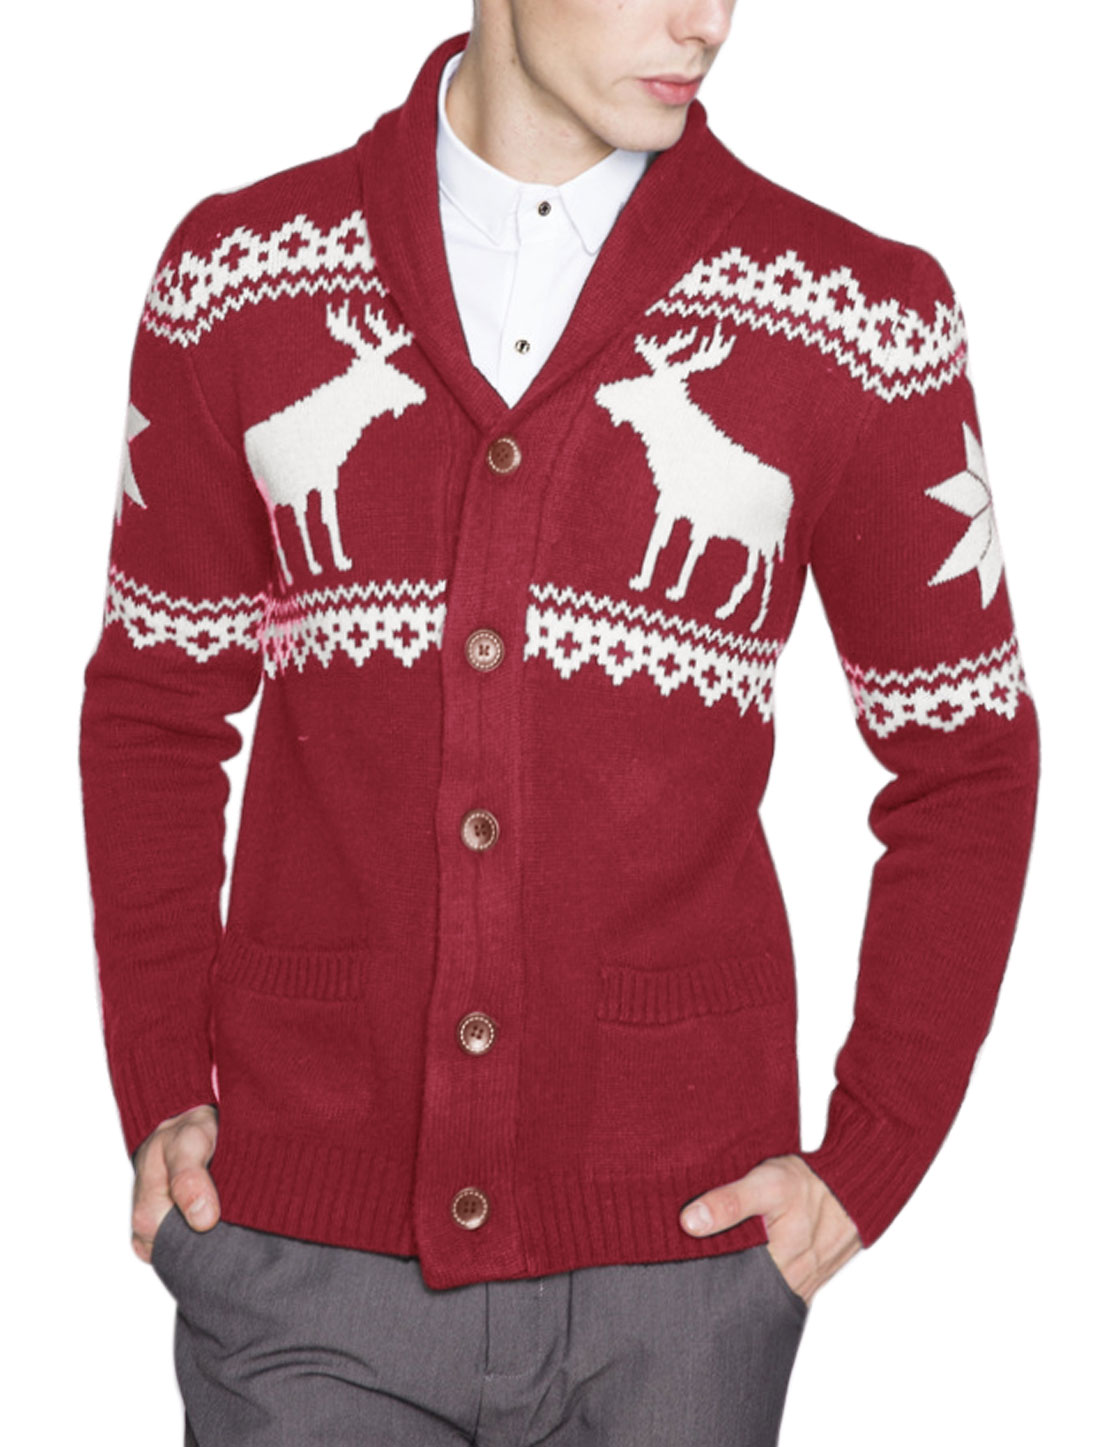 Men Deer Snowflake Geometric Pattern Sweater Cardigan Red S